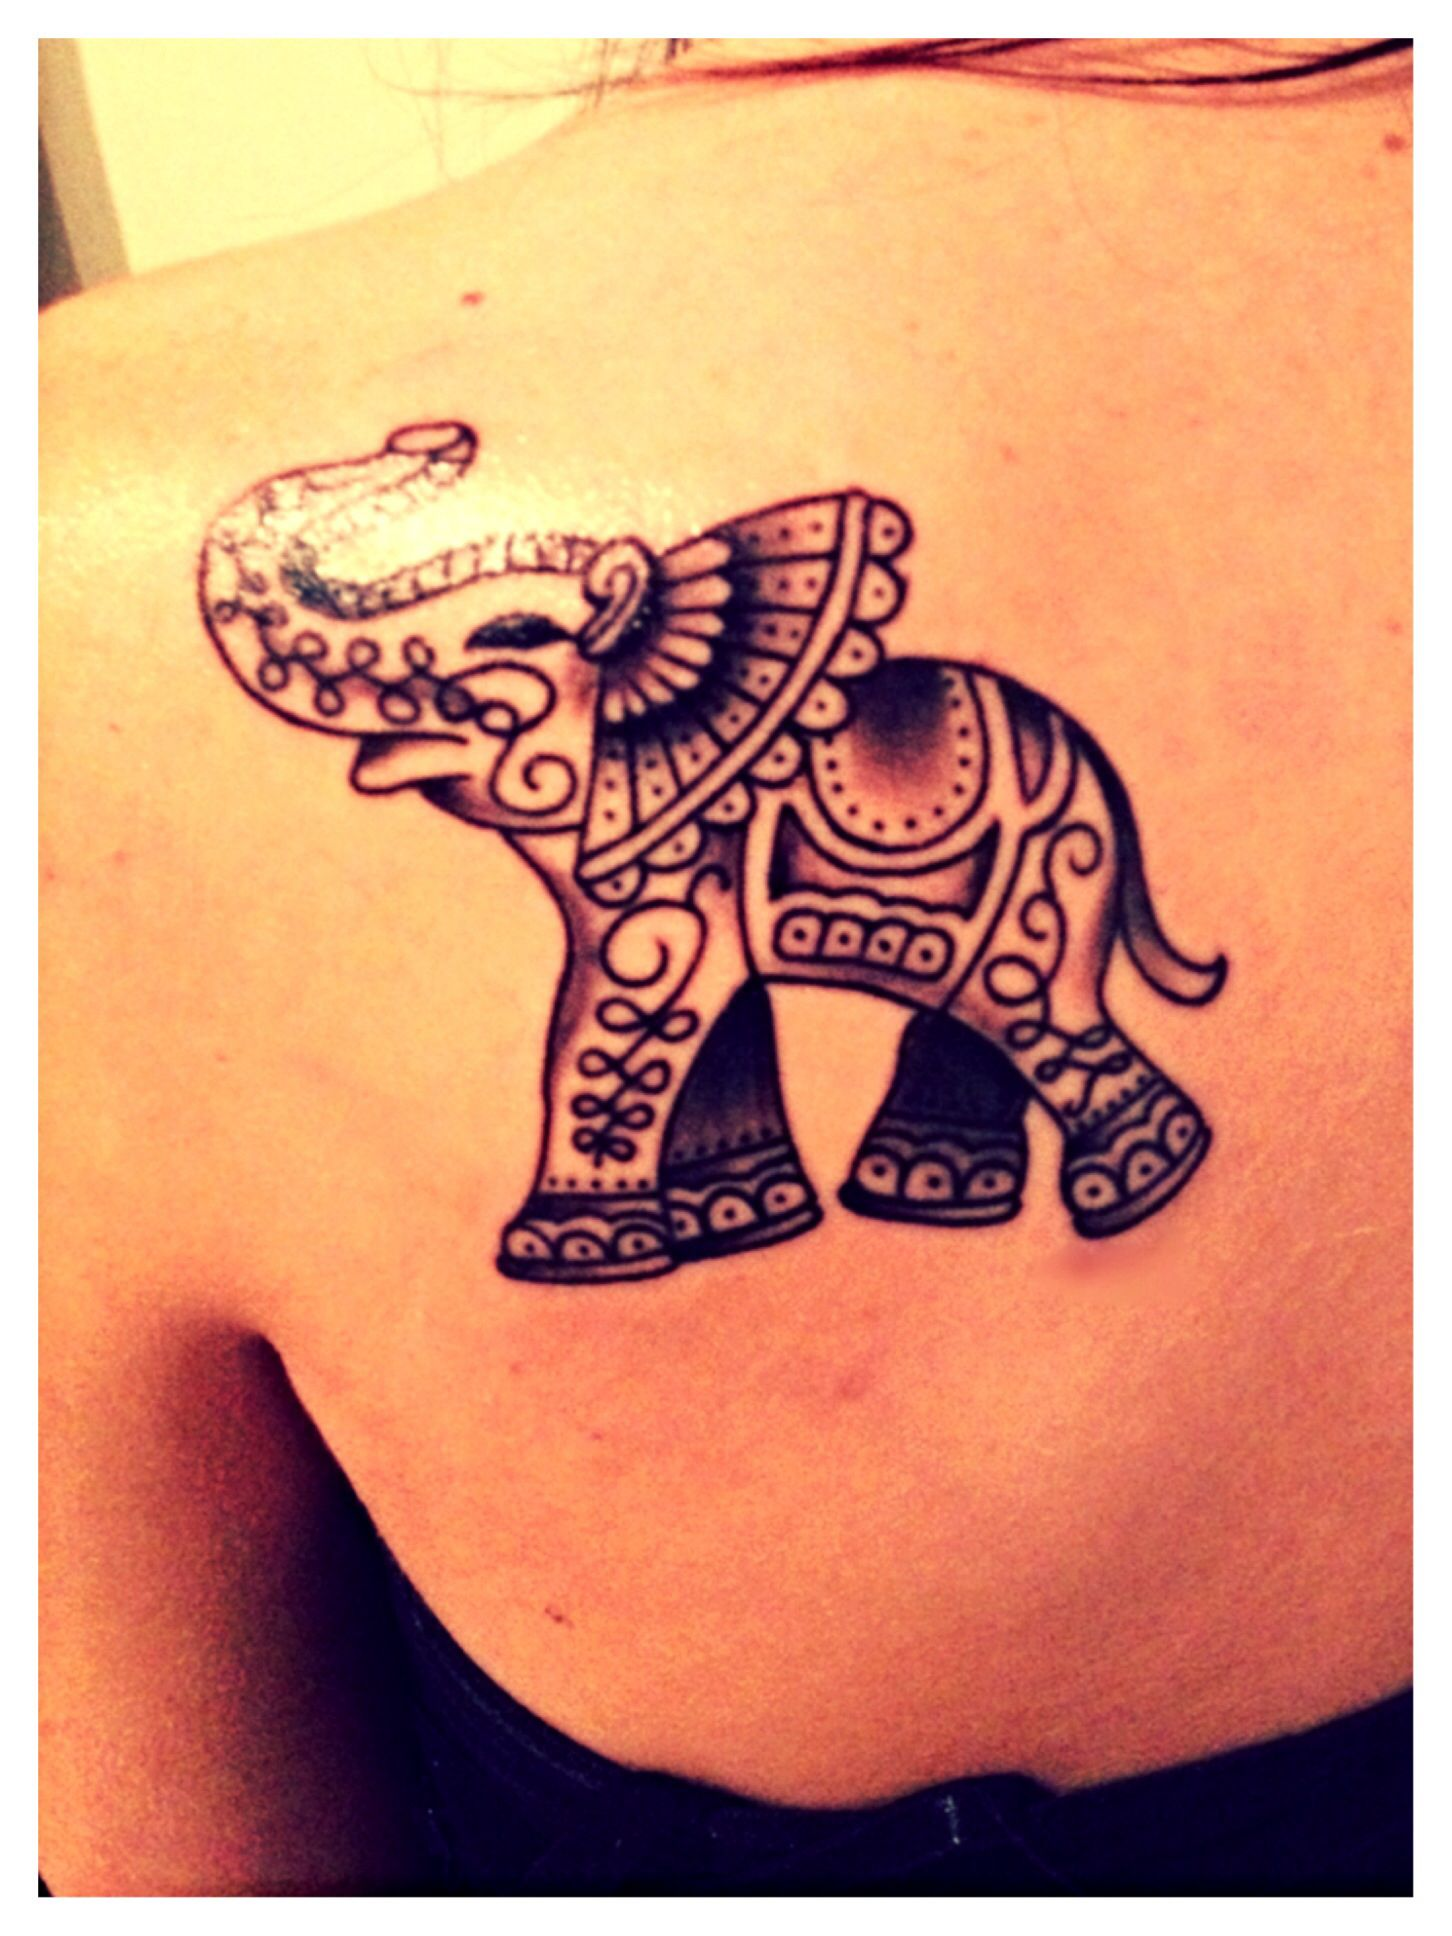 Elephant tattoo elephant tattoo pretty pinterest tattoo do you want to an elephant tattoo but not sure what kind of style or design youre check out the list of 55 elephant tattoo design ideas with meaning biocorpaavc Image collections